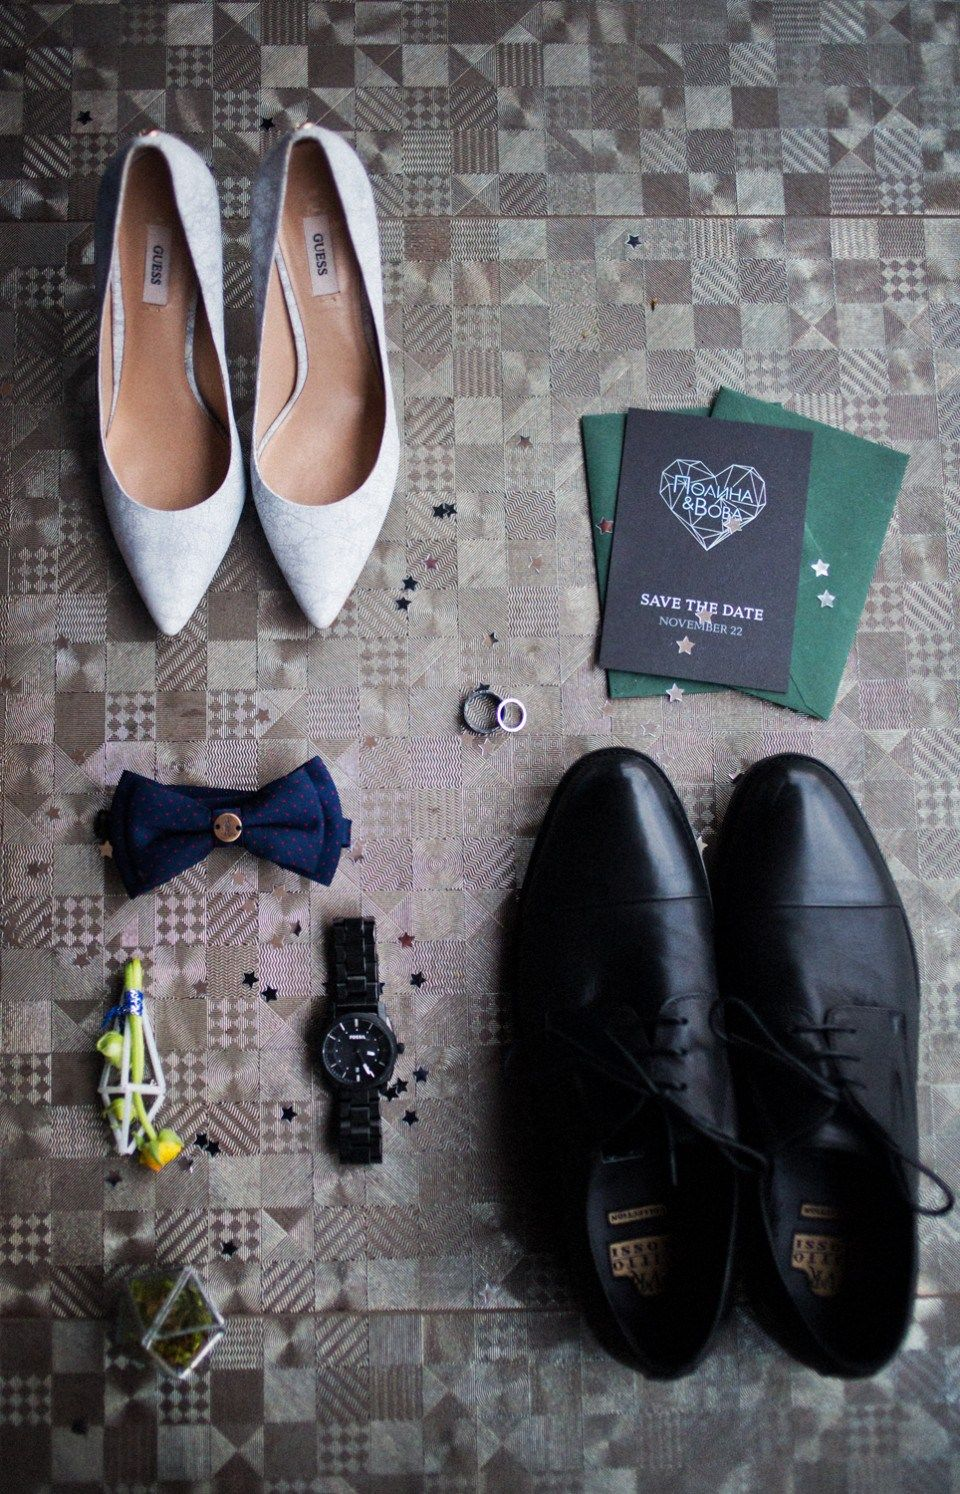 the shoes of the groom and the bride